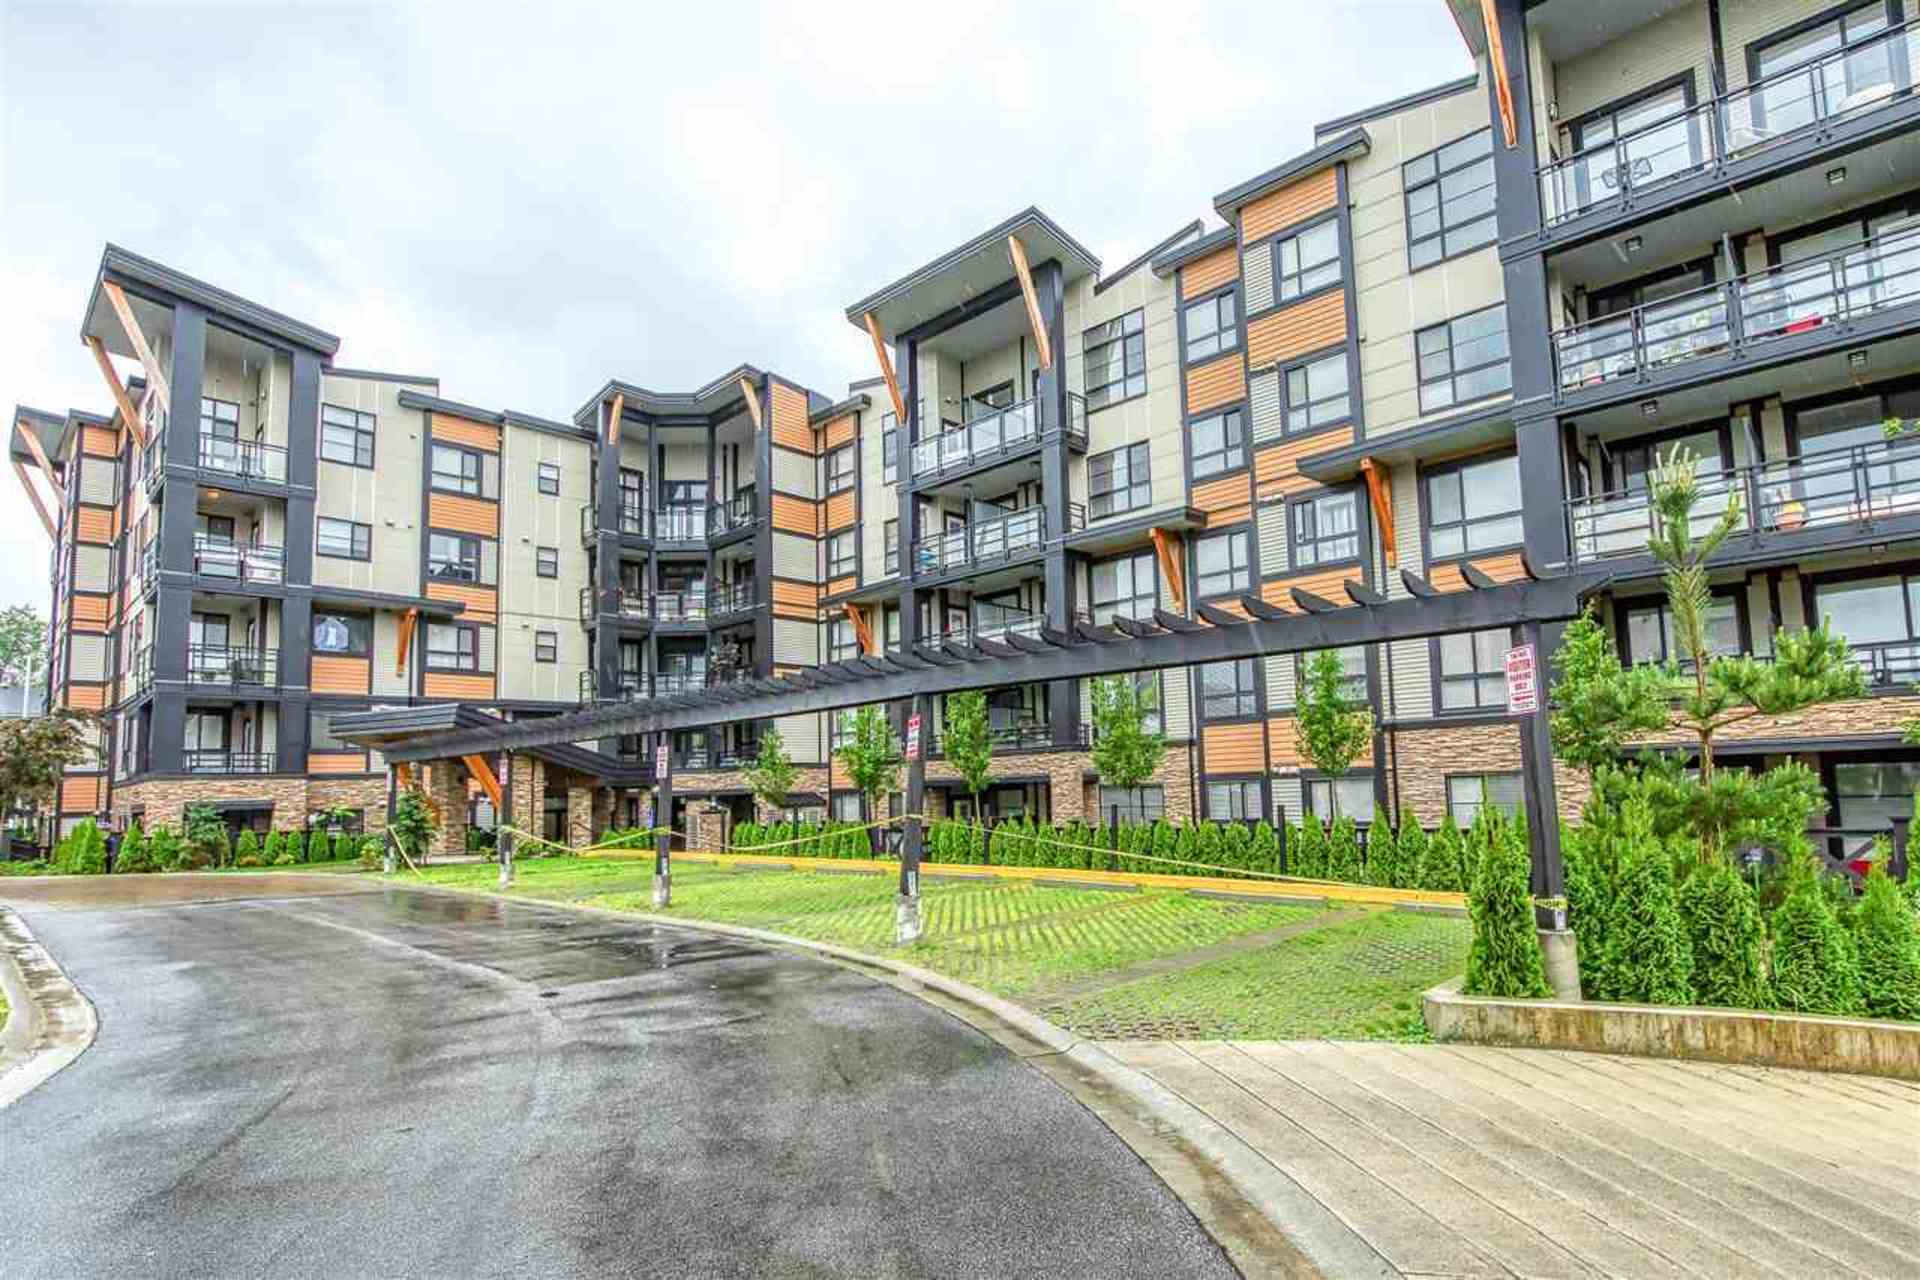 20829-77a-avenue-willoughby-heights-langley-02 of 414 - 20829 77a Avenue, Willoughby Heights, Langley